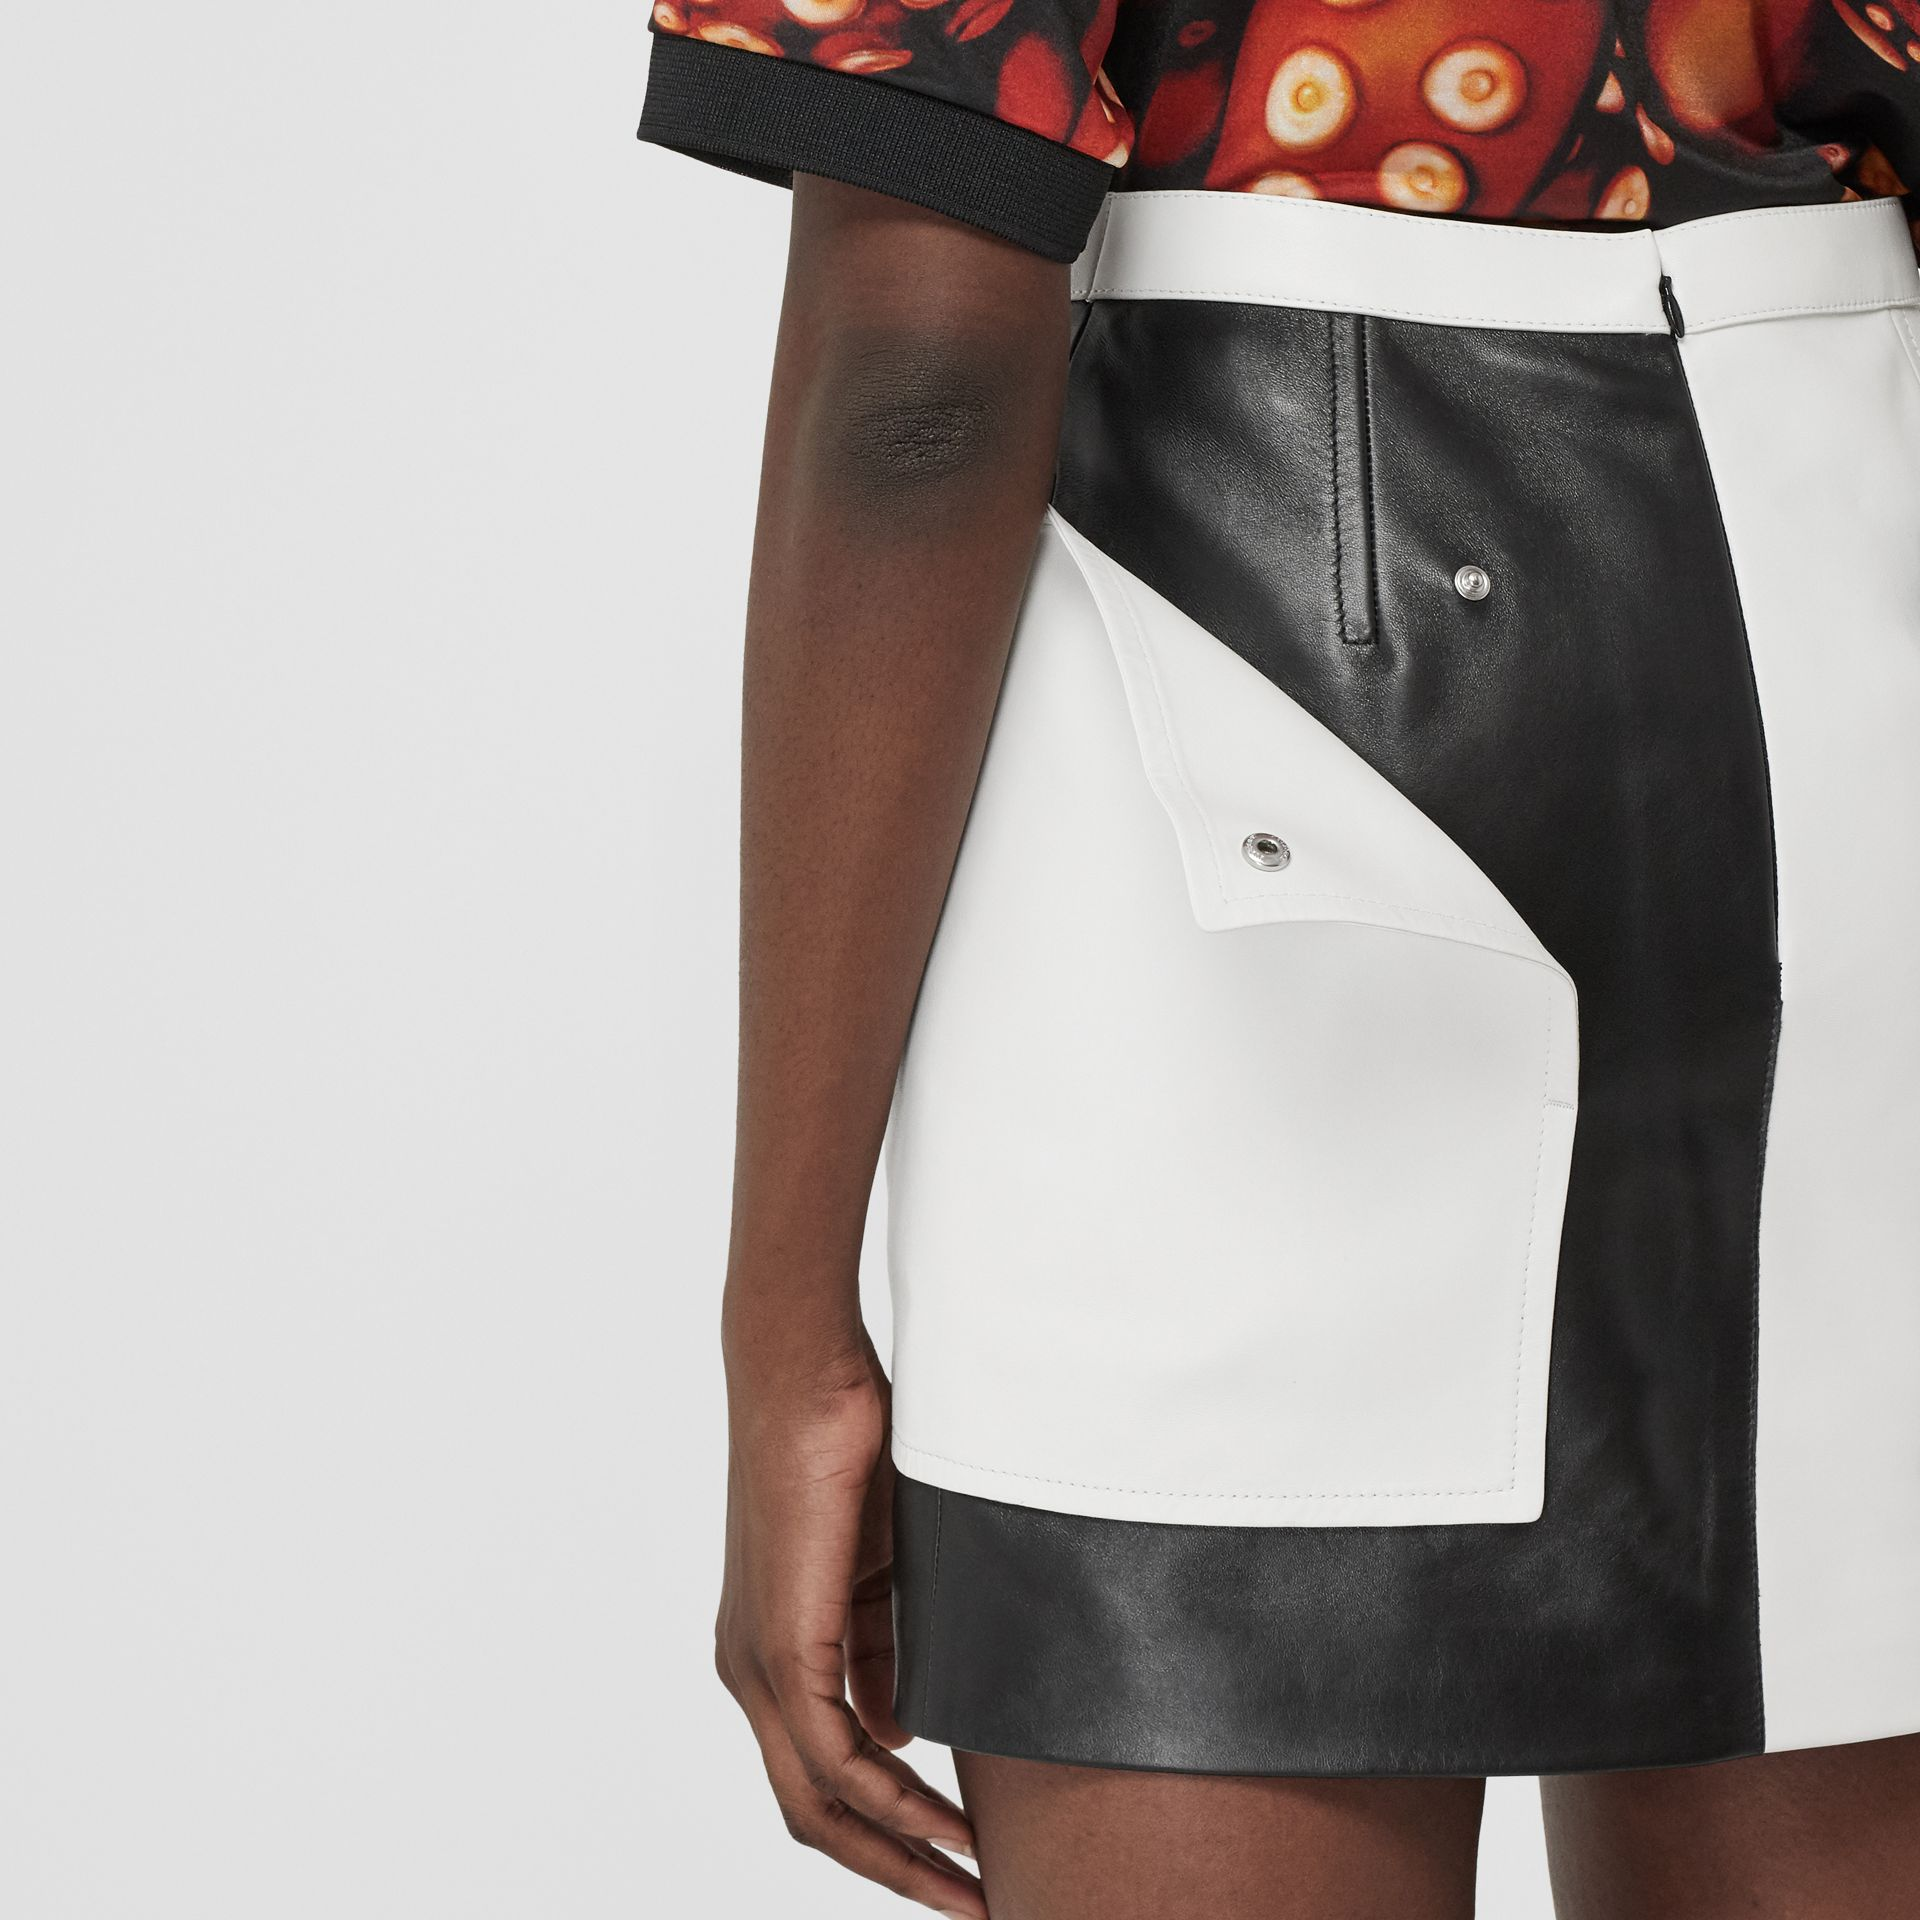 Pocket Detail Two-tone Lambskin Mini Skirt in Black/white - Women | Burberry Australia - gallery image 4